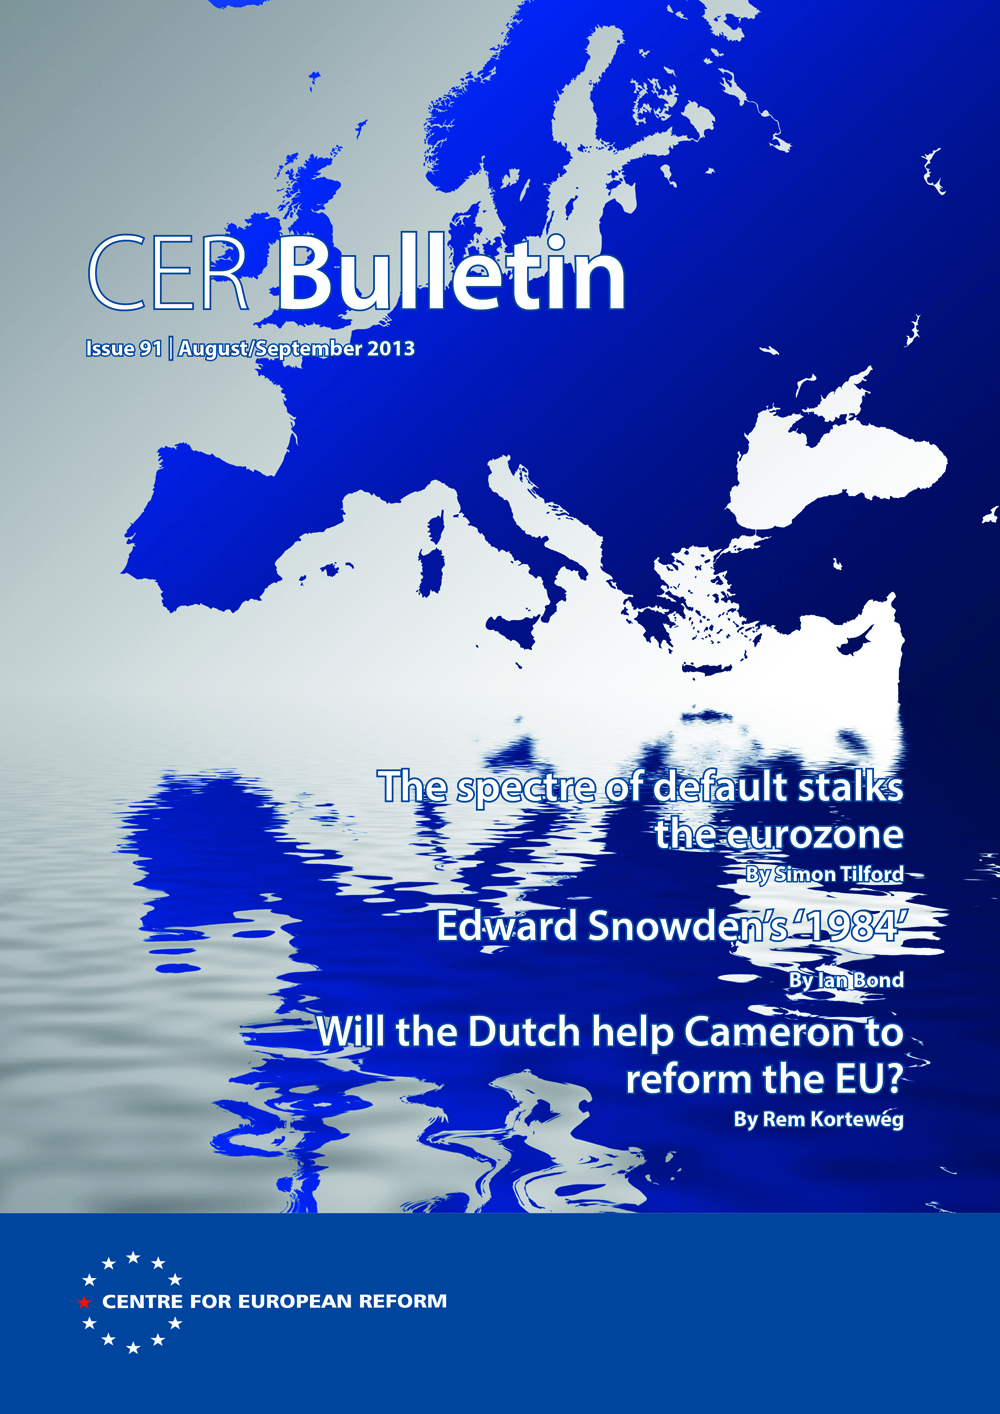 Bulletin issue 91